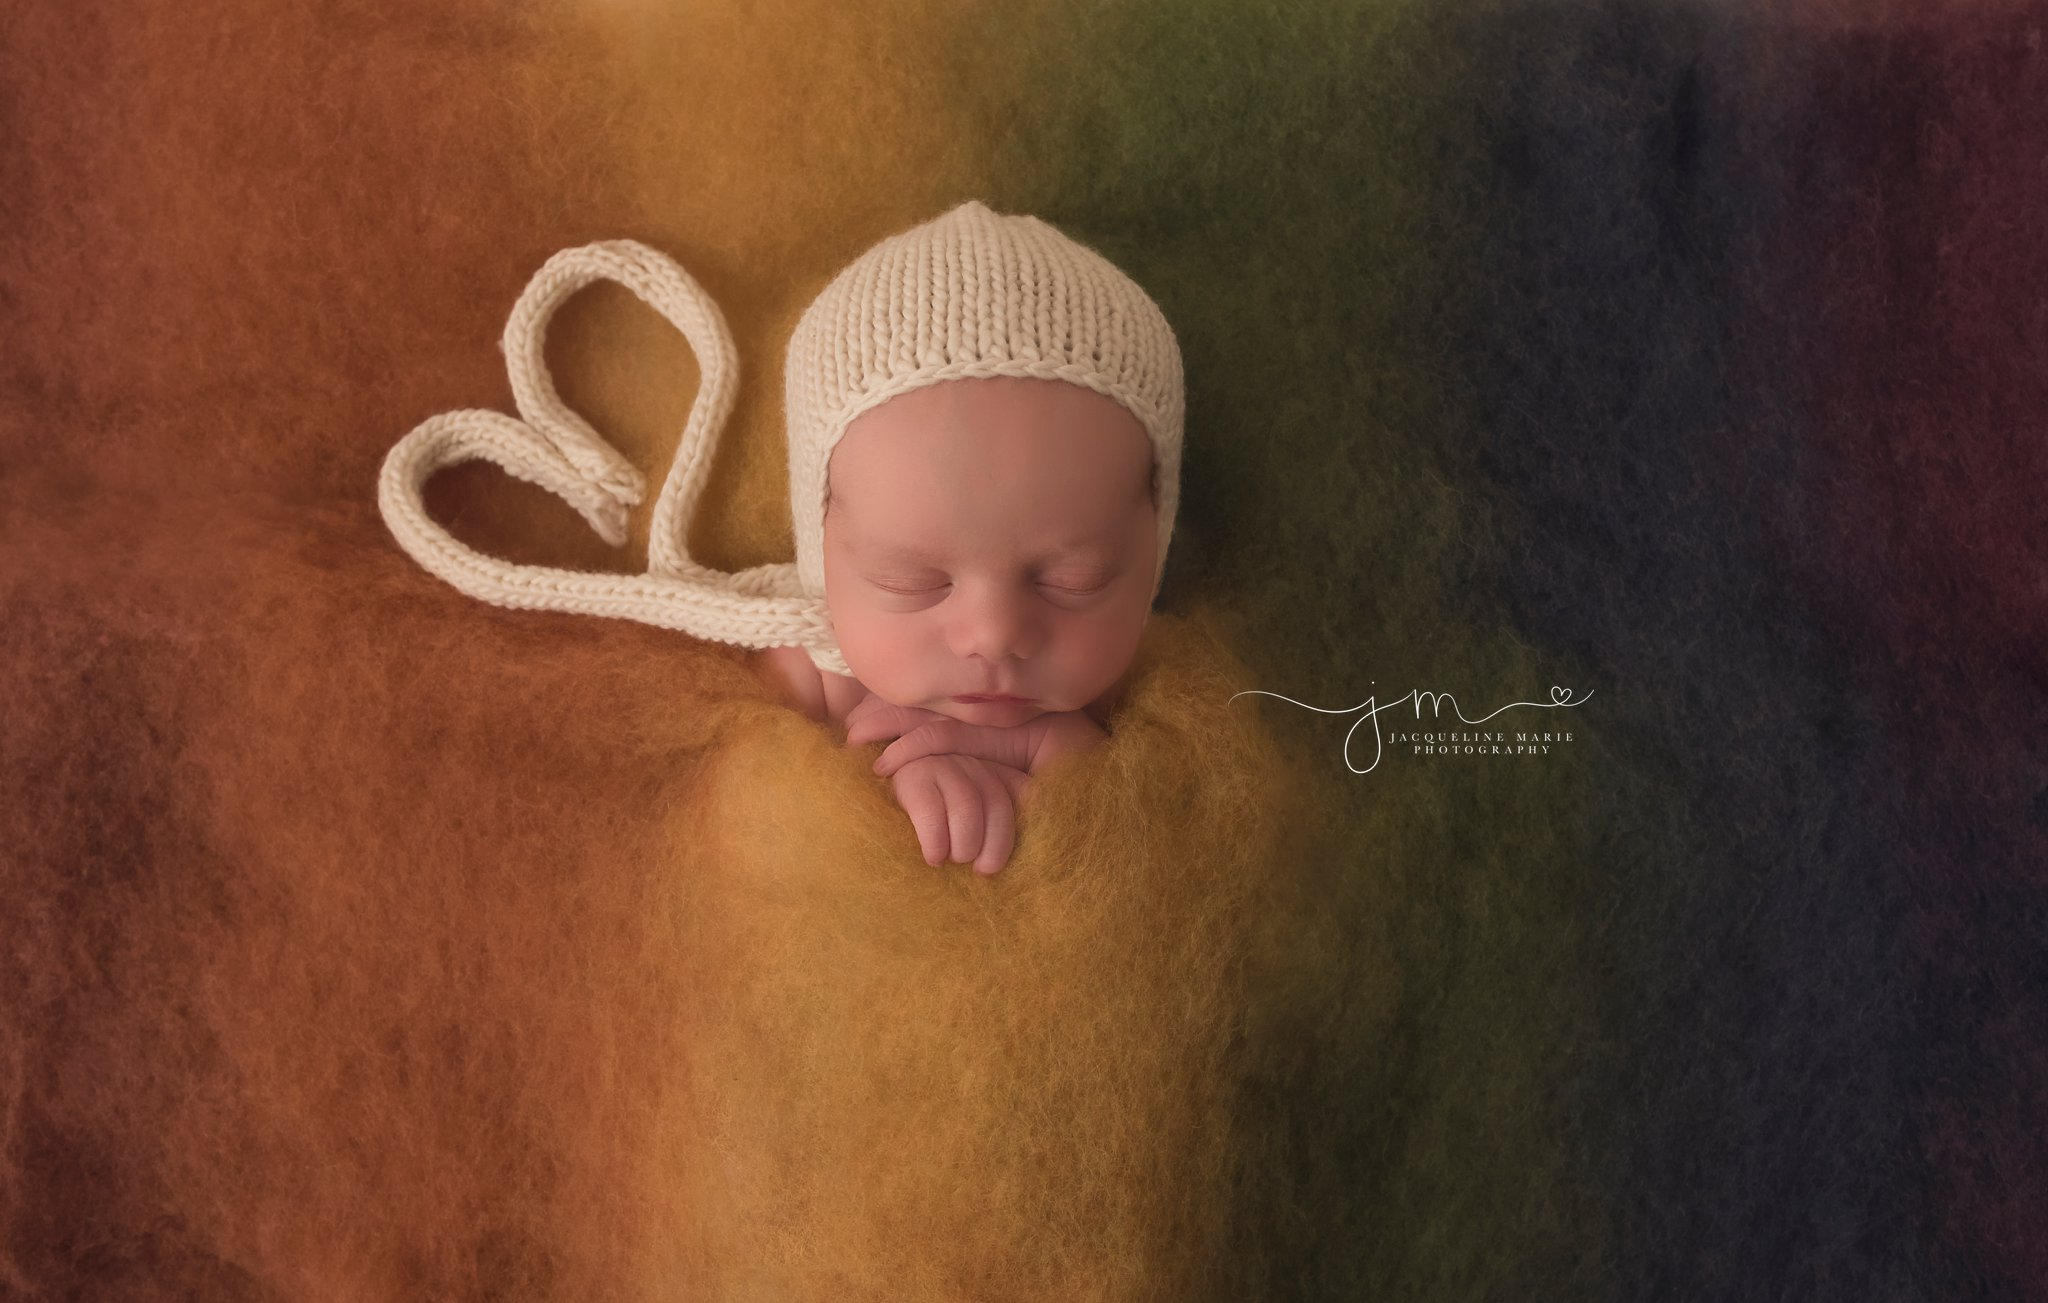 11 day old newborn rainbow baby snuggled in rainbow fluff for newborn pictures at Jacqueline Marie Photography studio in columbus ohio